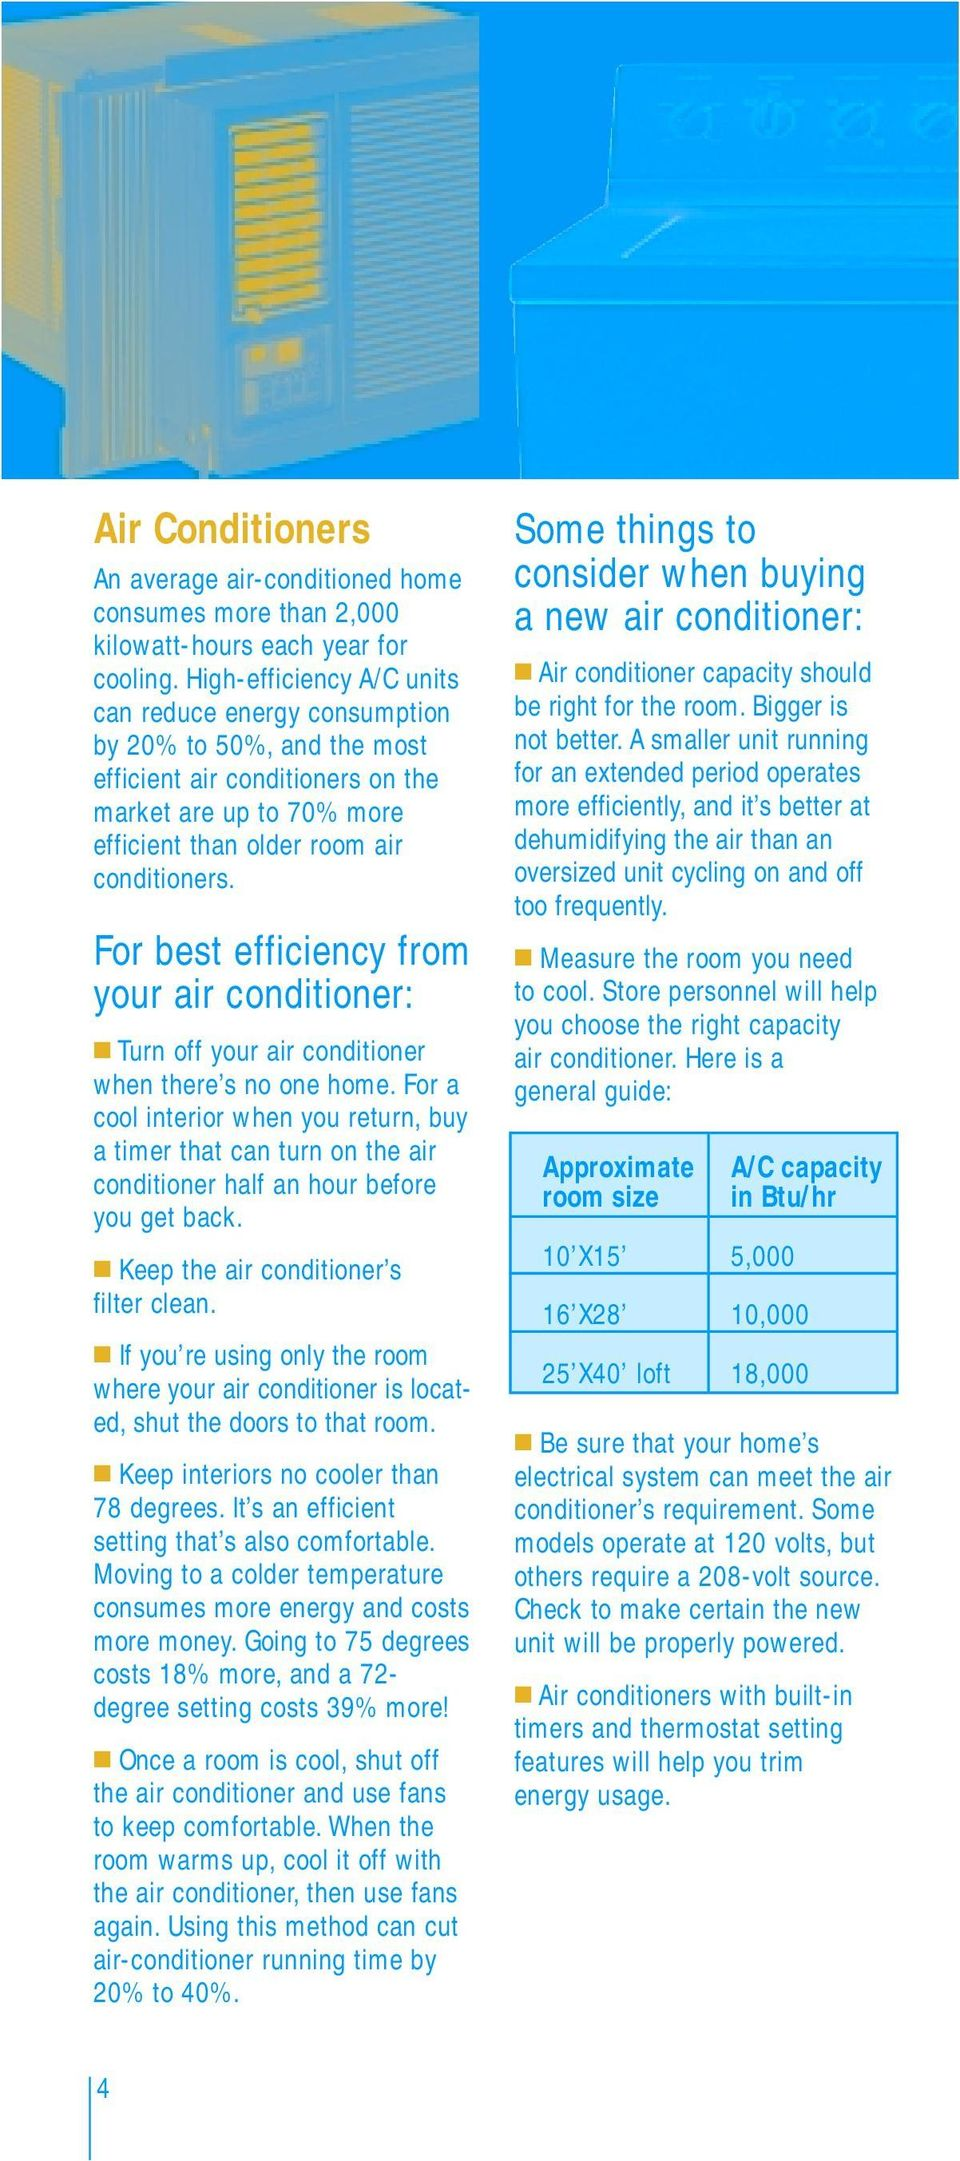 For best efficiency from your air conditioner: Turn off your air conditioner when there s no one home.